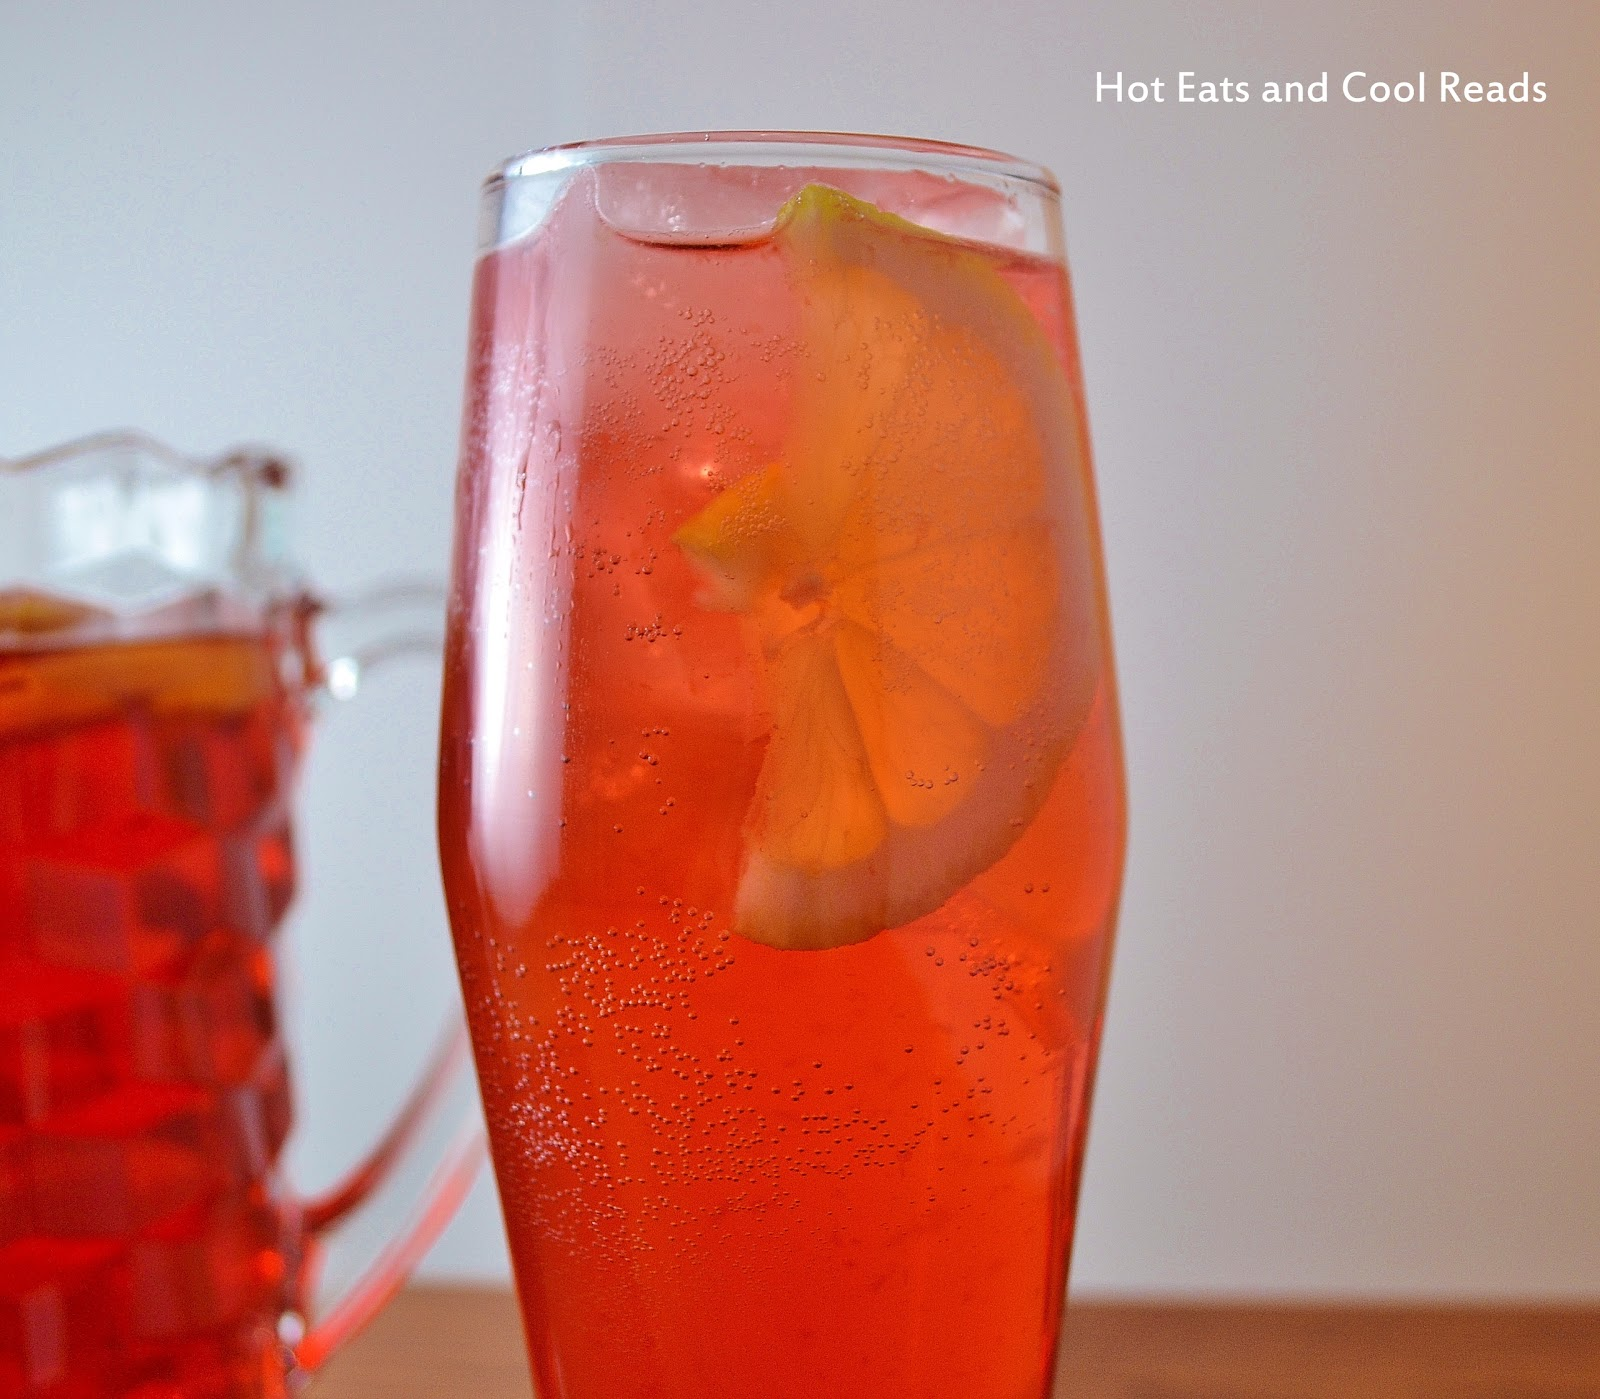 Hot Eats and Cool Reads: Sparkling Apple Cider Punch Recipe